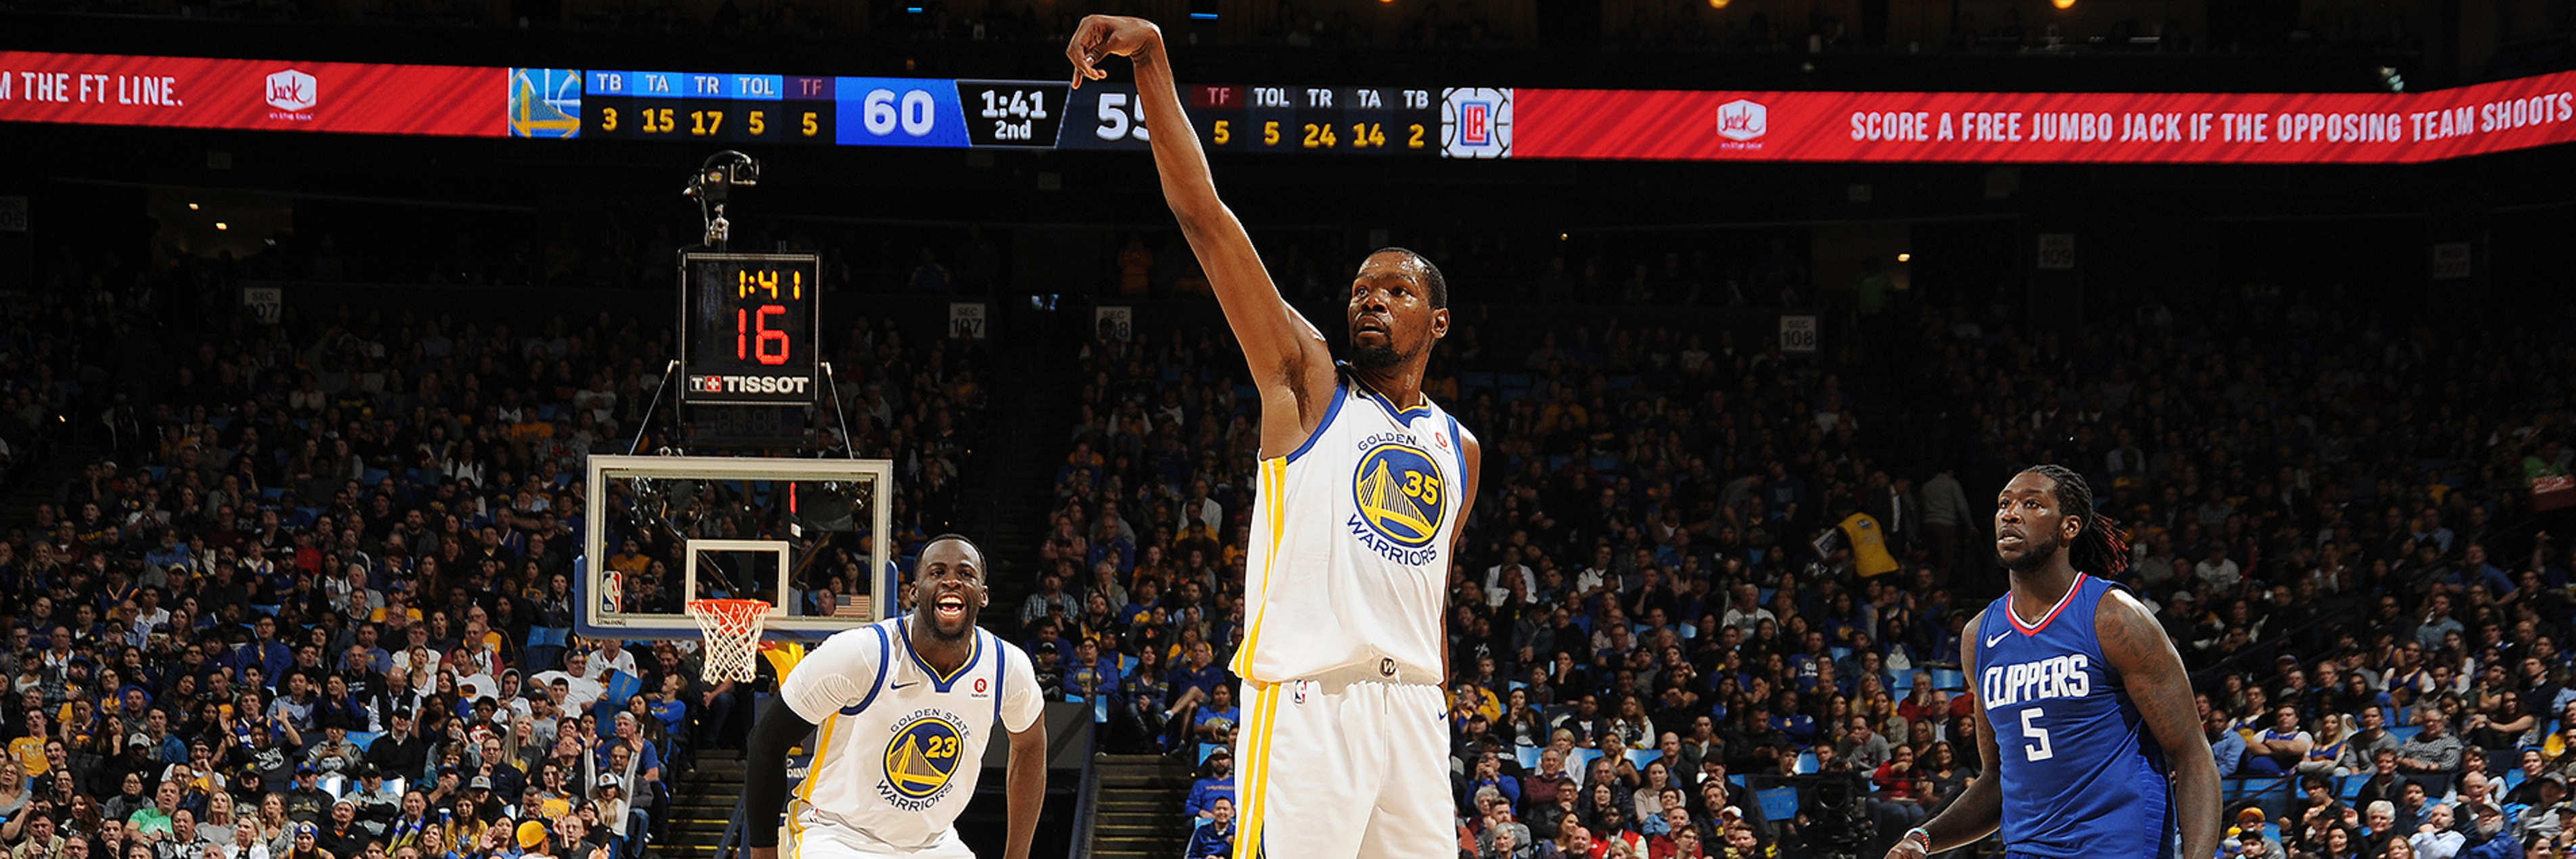 KD Passes 20,000 Career Points Milestone in Dubs' Defeat